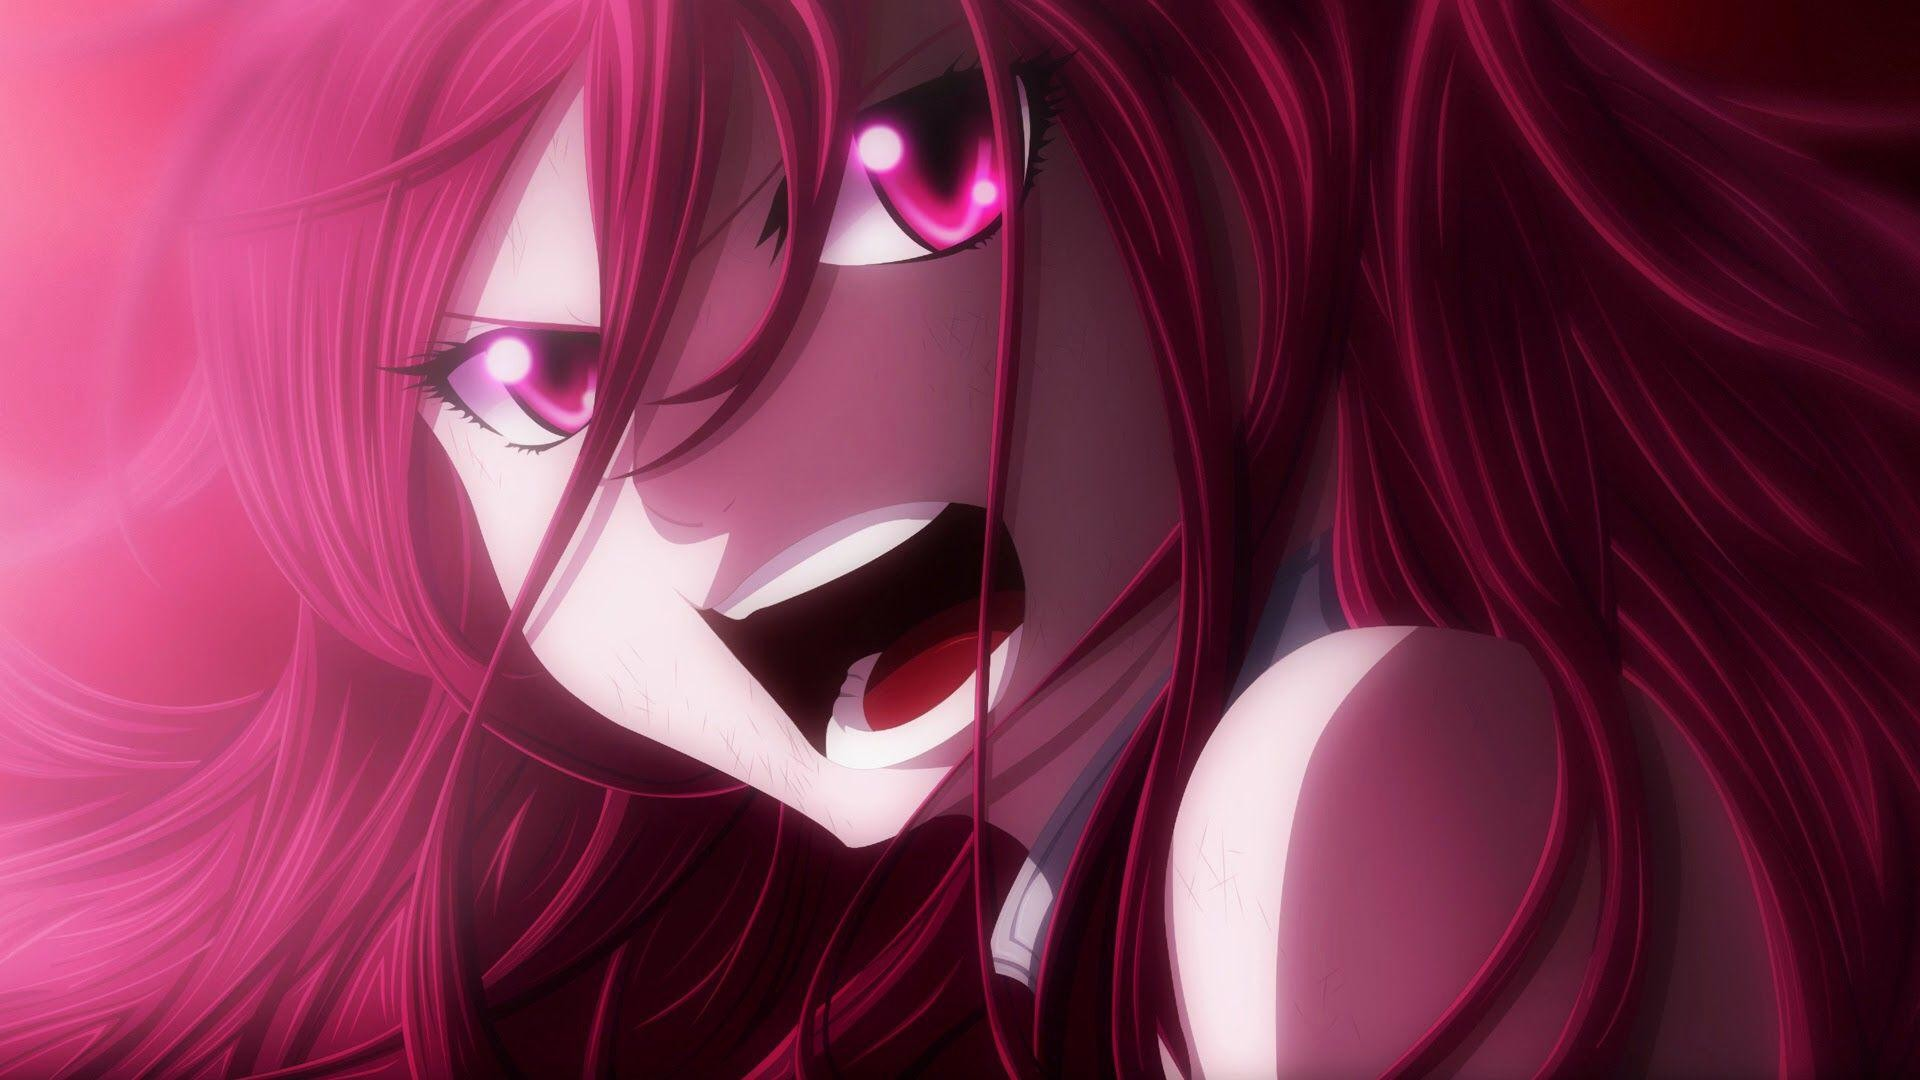 Erza-Scarlet-Fairy-Tail-wallpaper-wp6404907